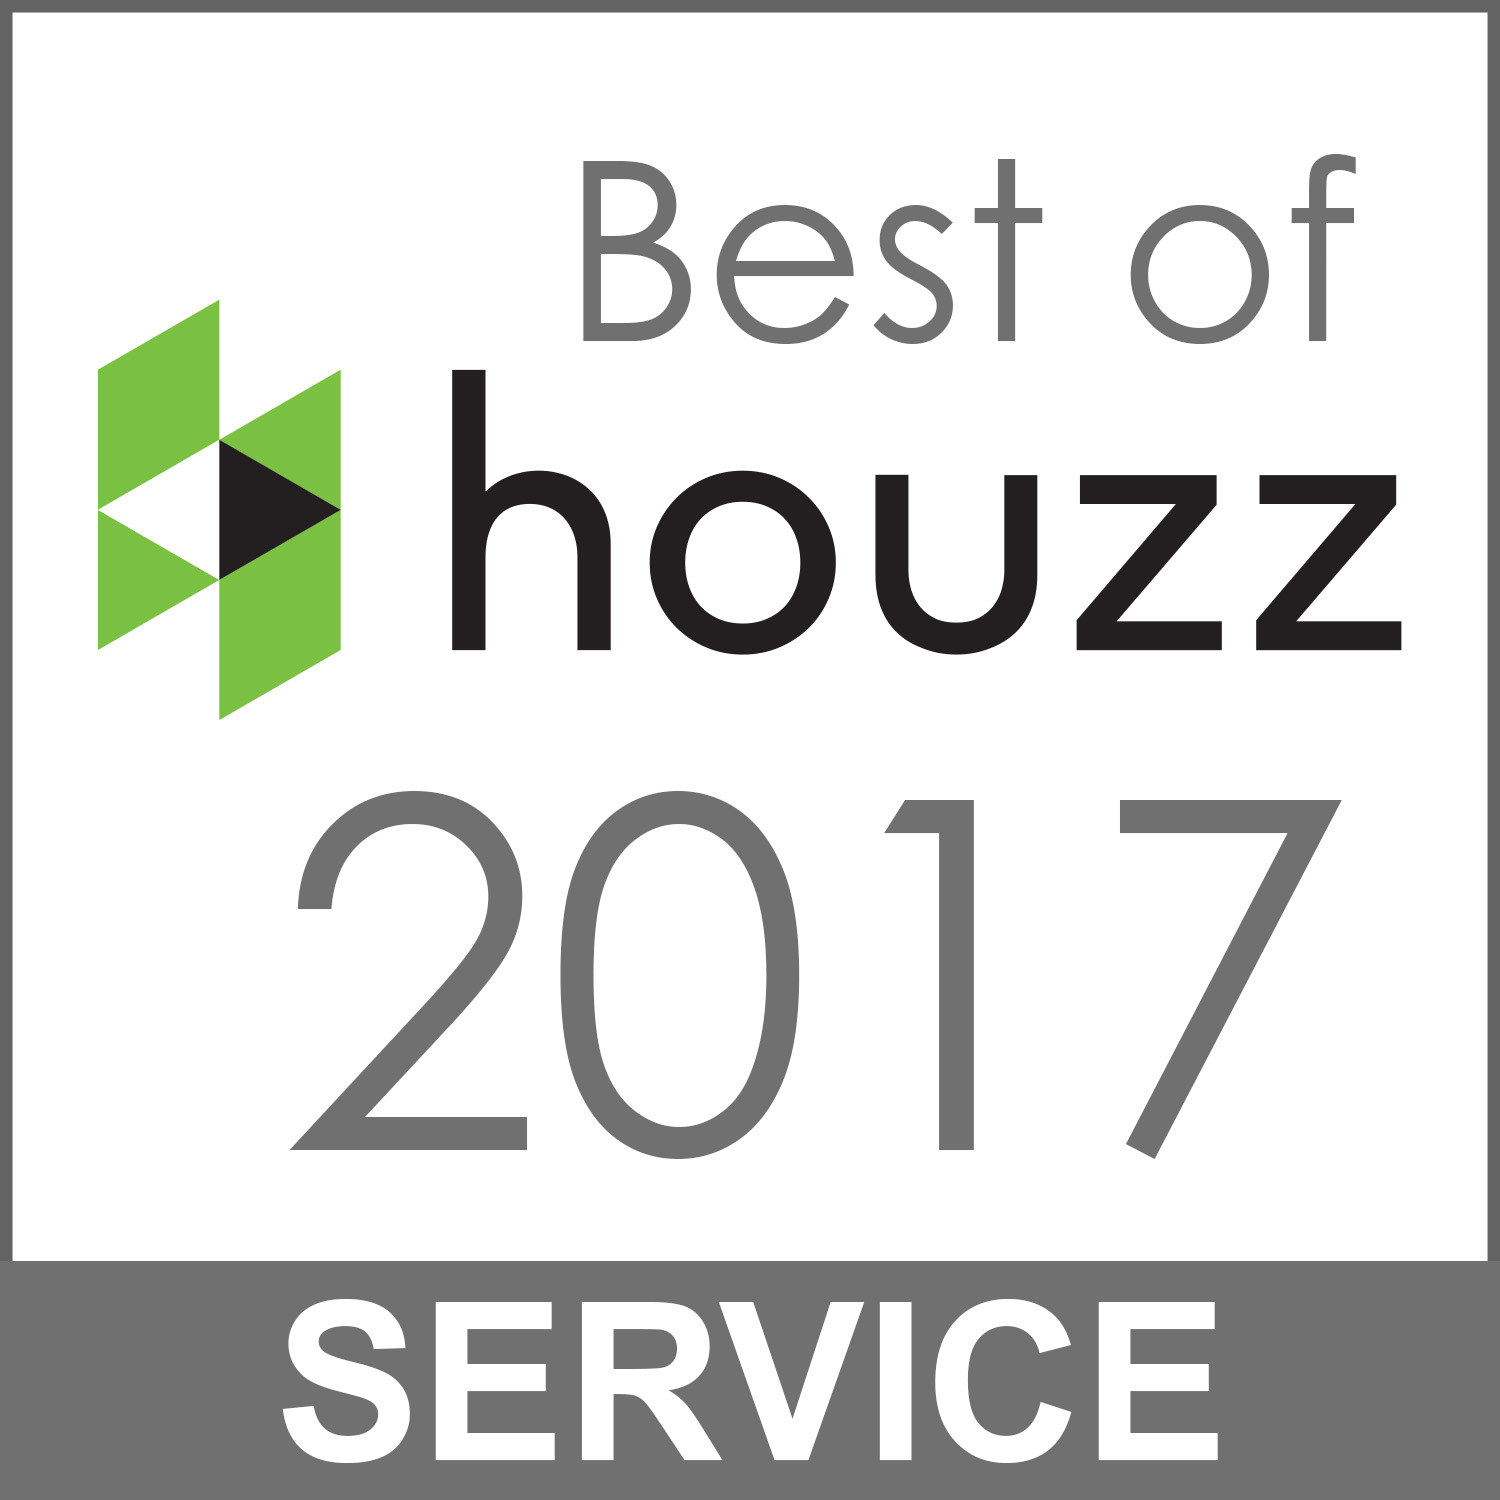 2017 winner best of houzz badge indoor-outdoor kitchen designer joan bigg rockland county ny